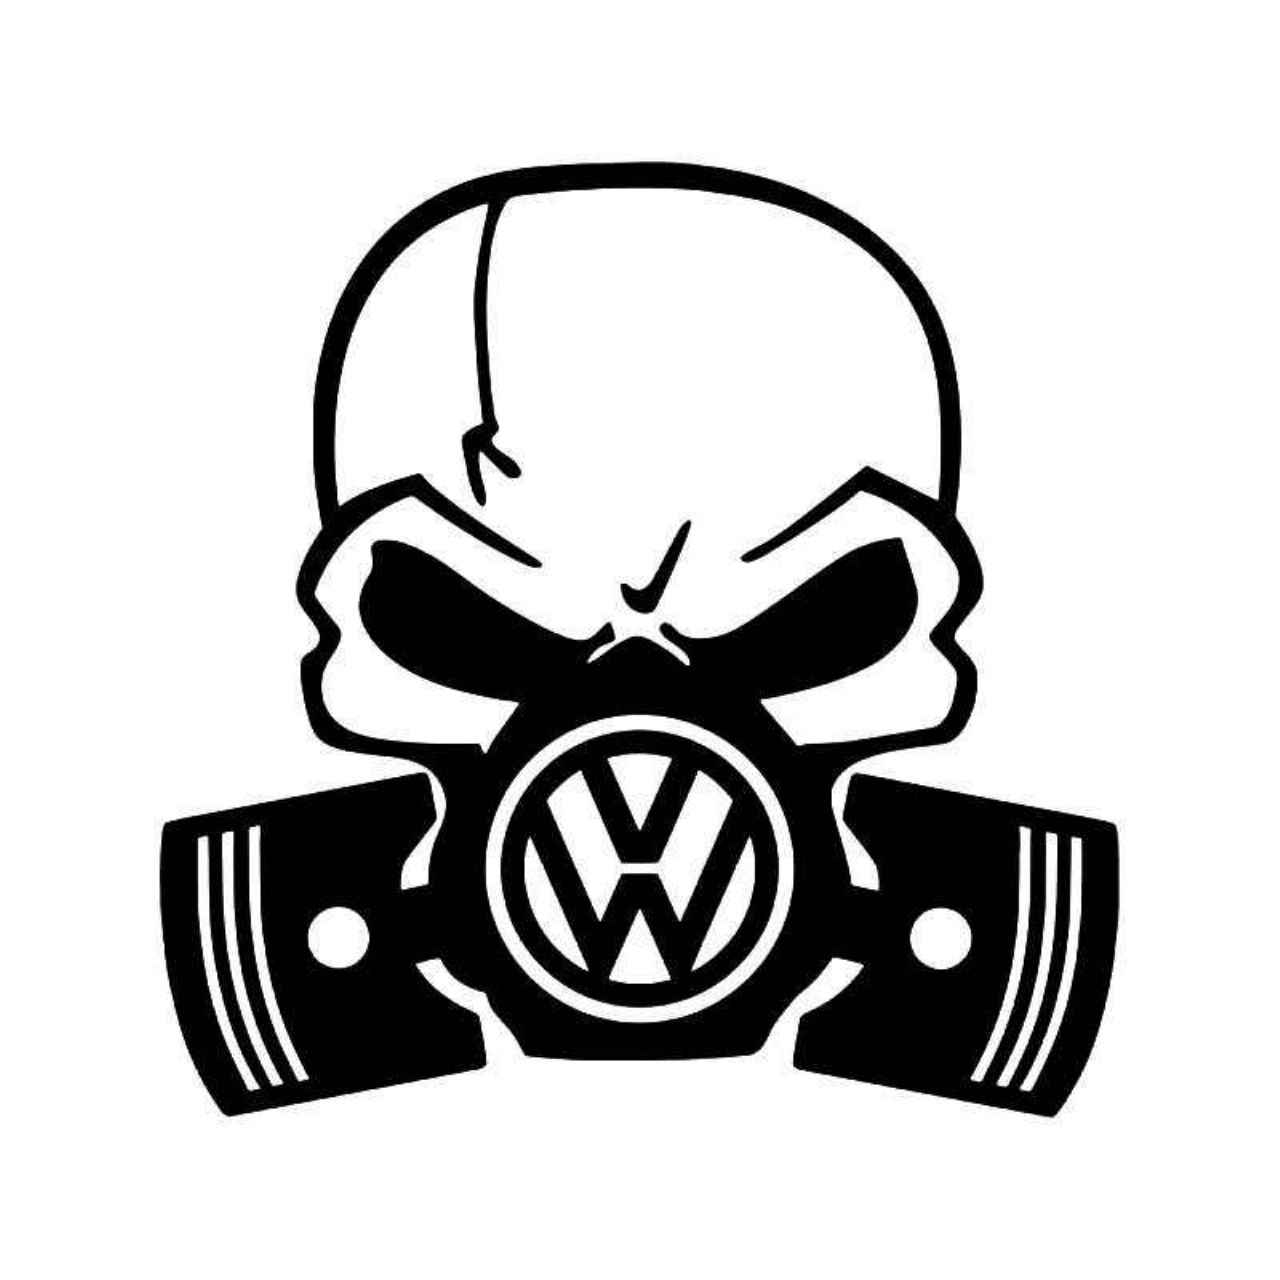 1280x1280 Vw Skull Piston Gas Mask Vinyl Decal Sticker Masking